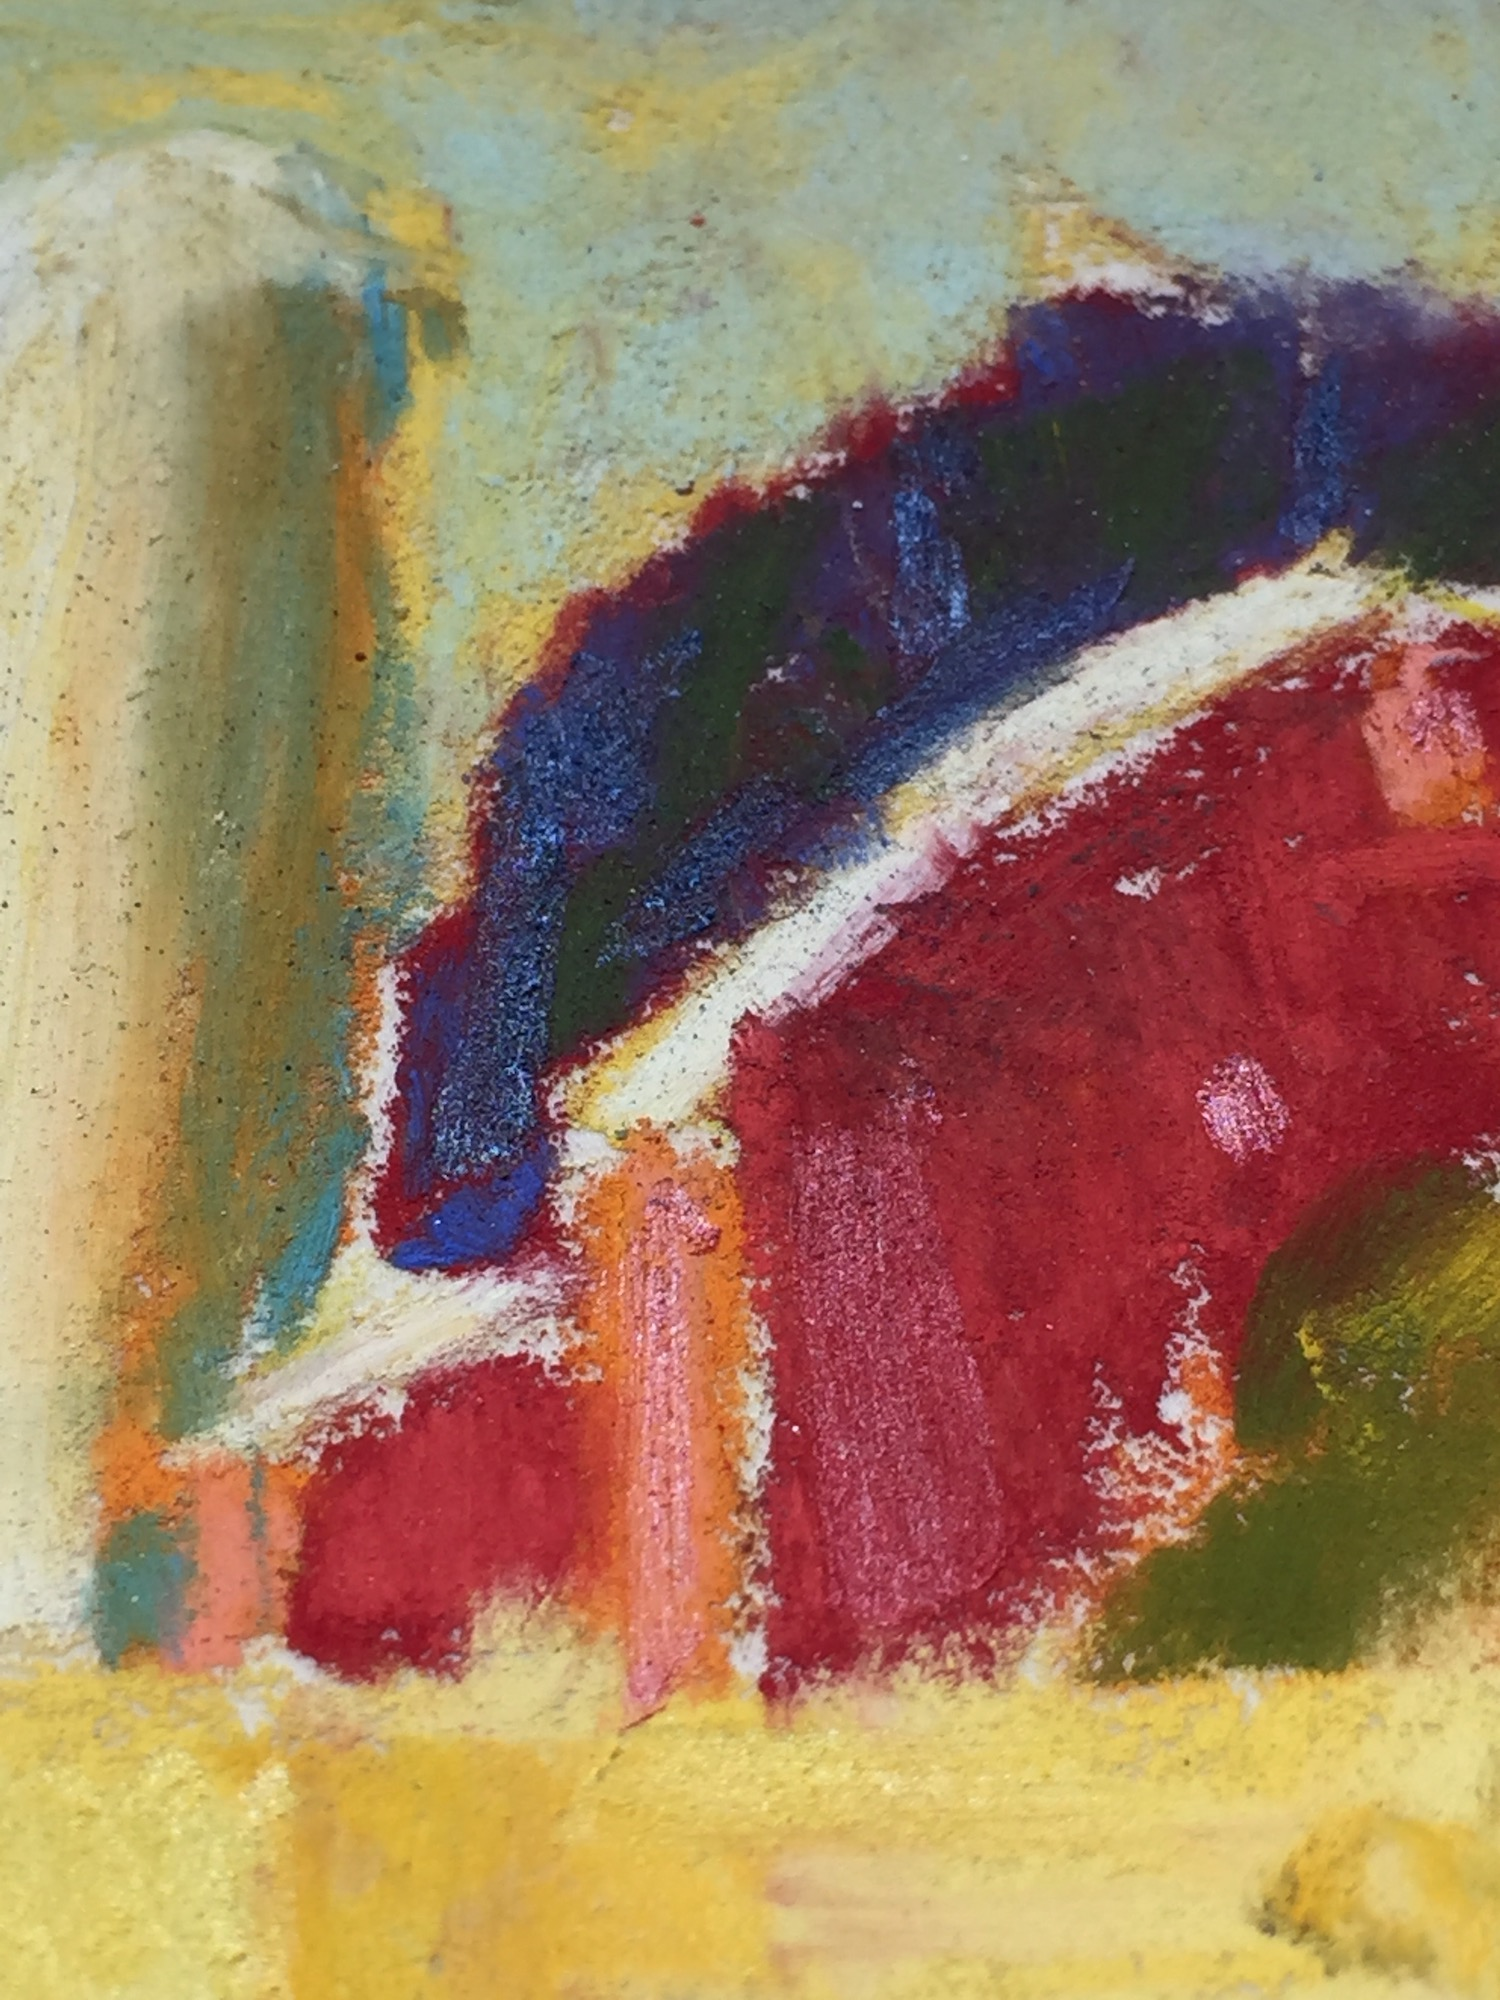 Colour study titled towards light after adding Sennelier's iridescent pastels